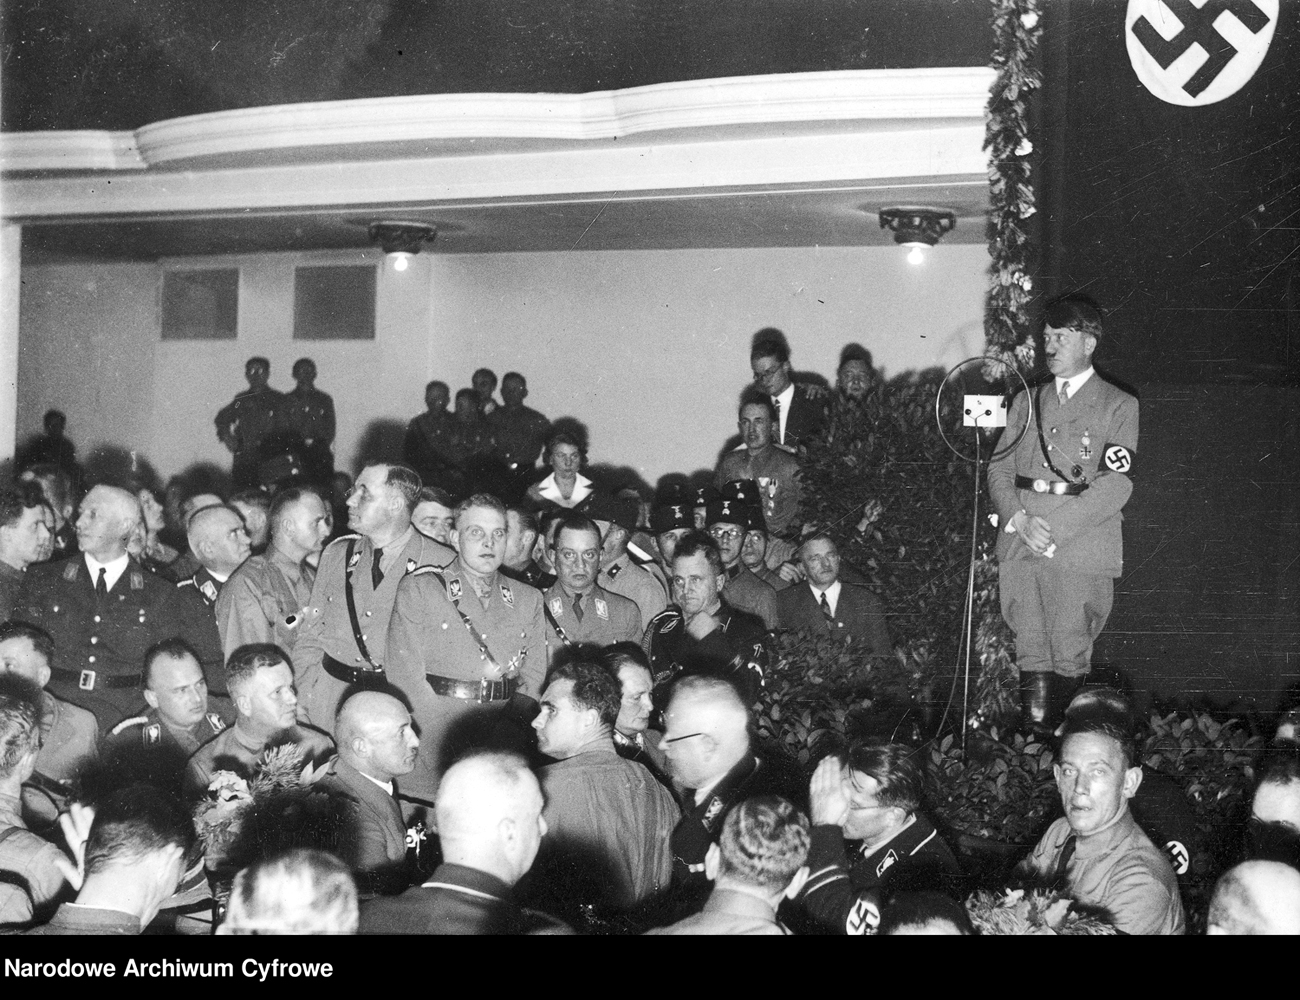 Adolf Hitler makes a speech to party members in Munich's Bürgerbräukeller for the 10th anniversary of the putsch attempt